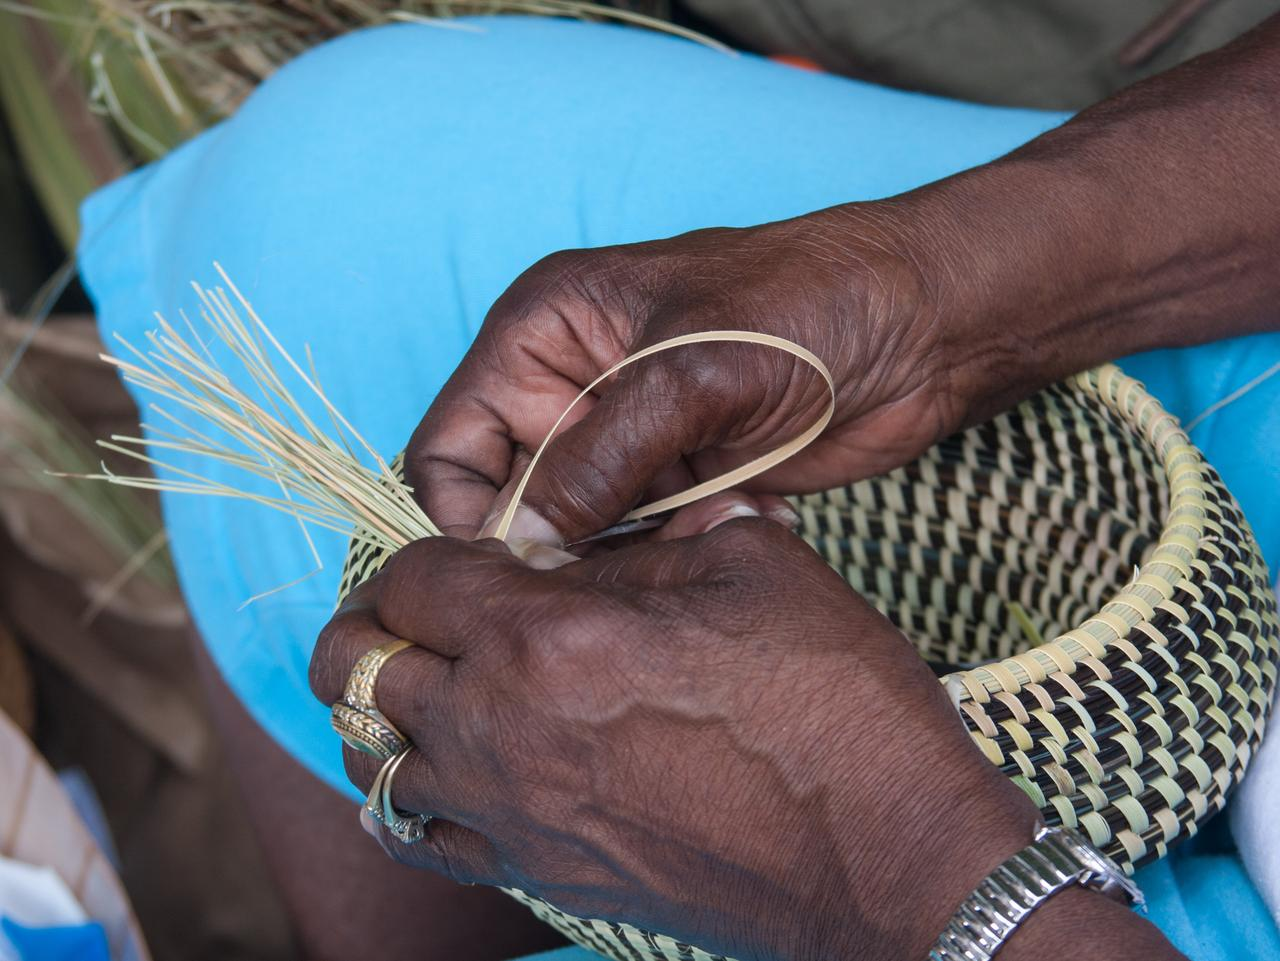 Hands weaving sweetgrass into beautiful baskets